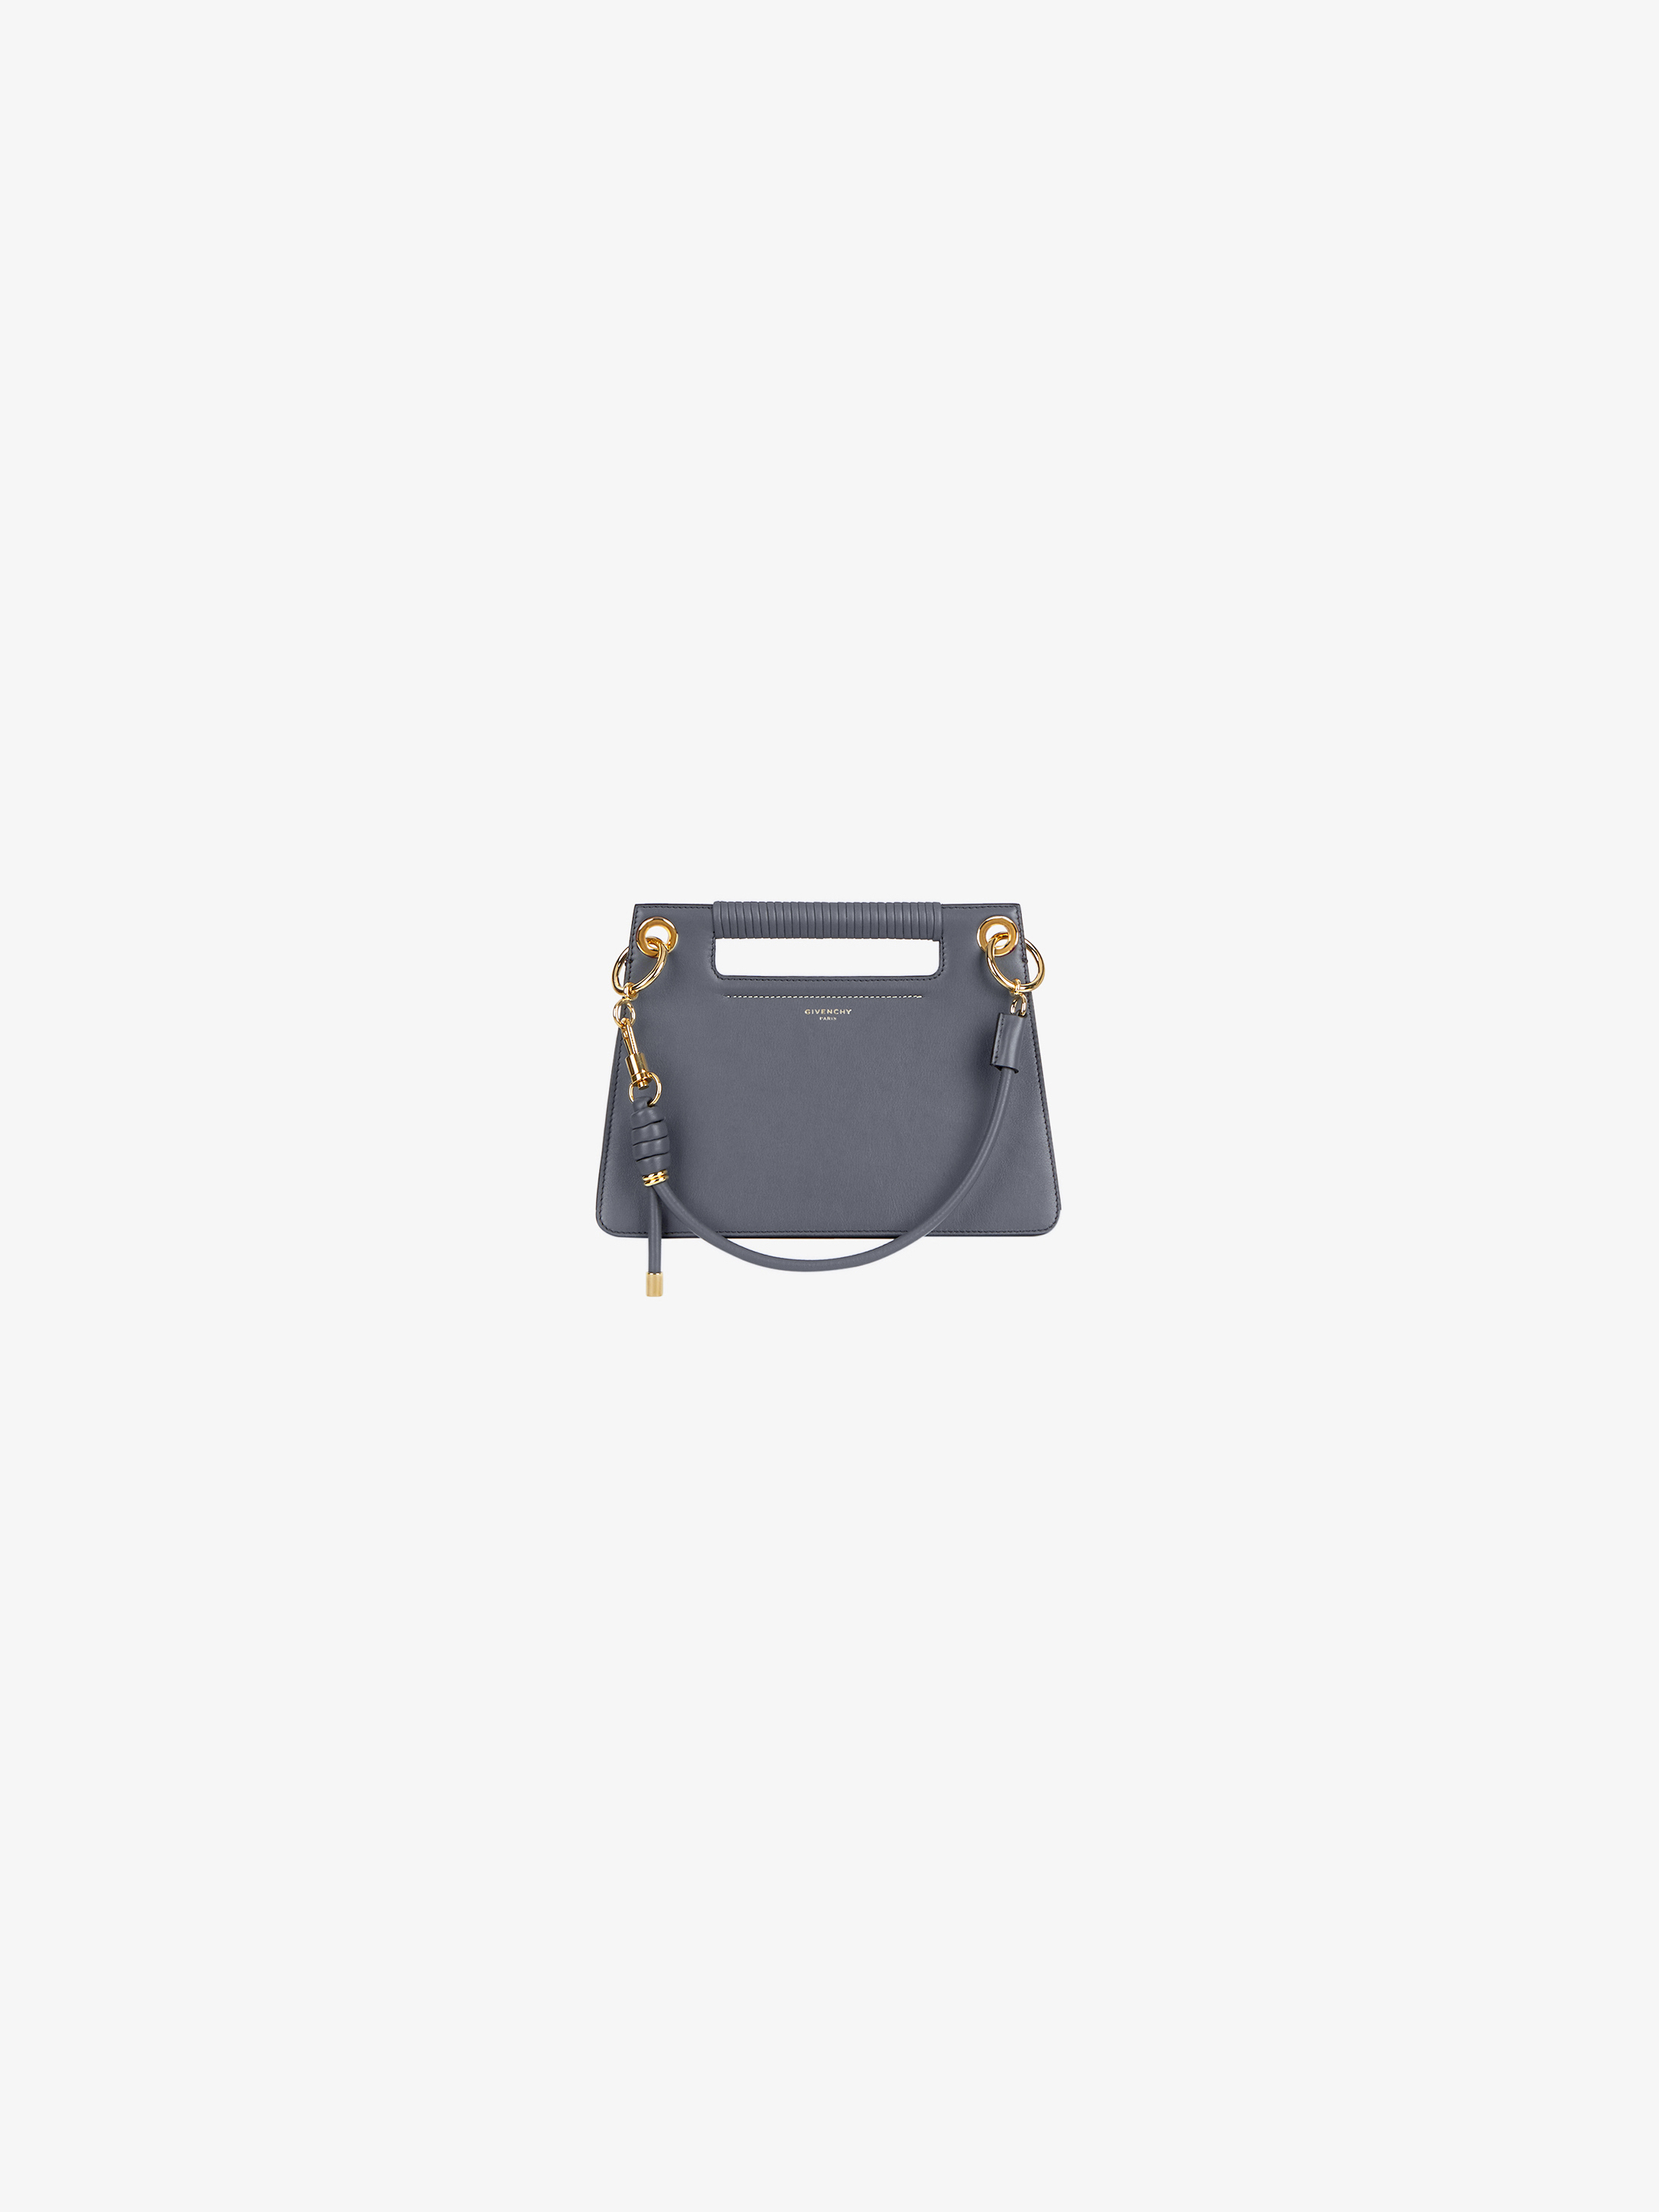 Small Whip bag with contrasting details